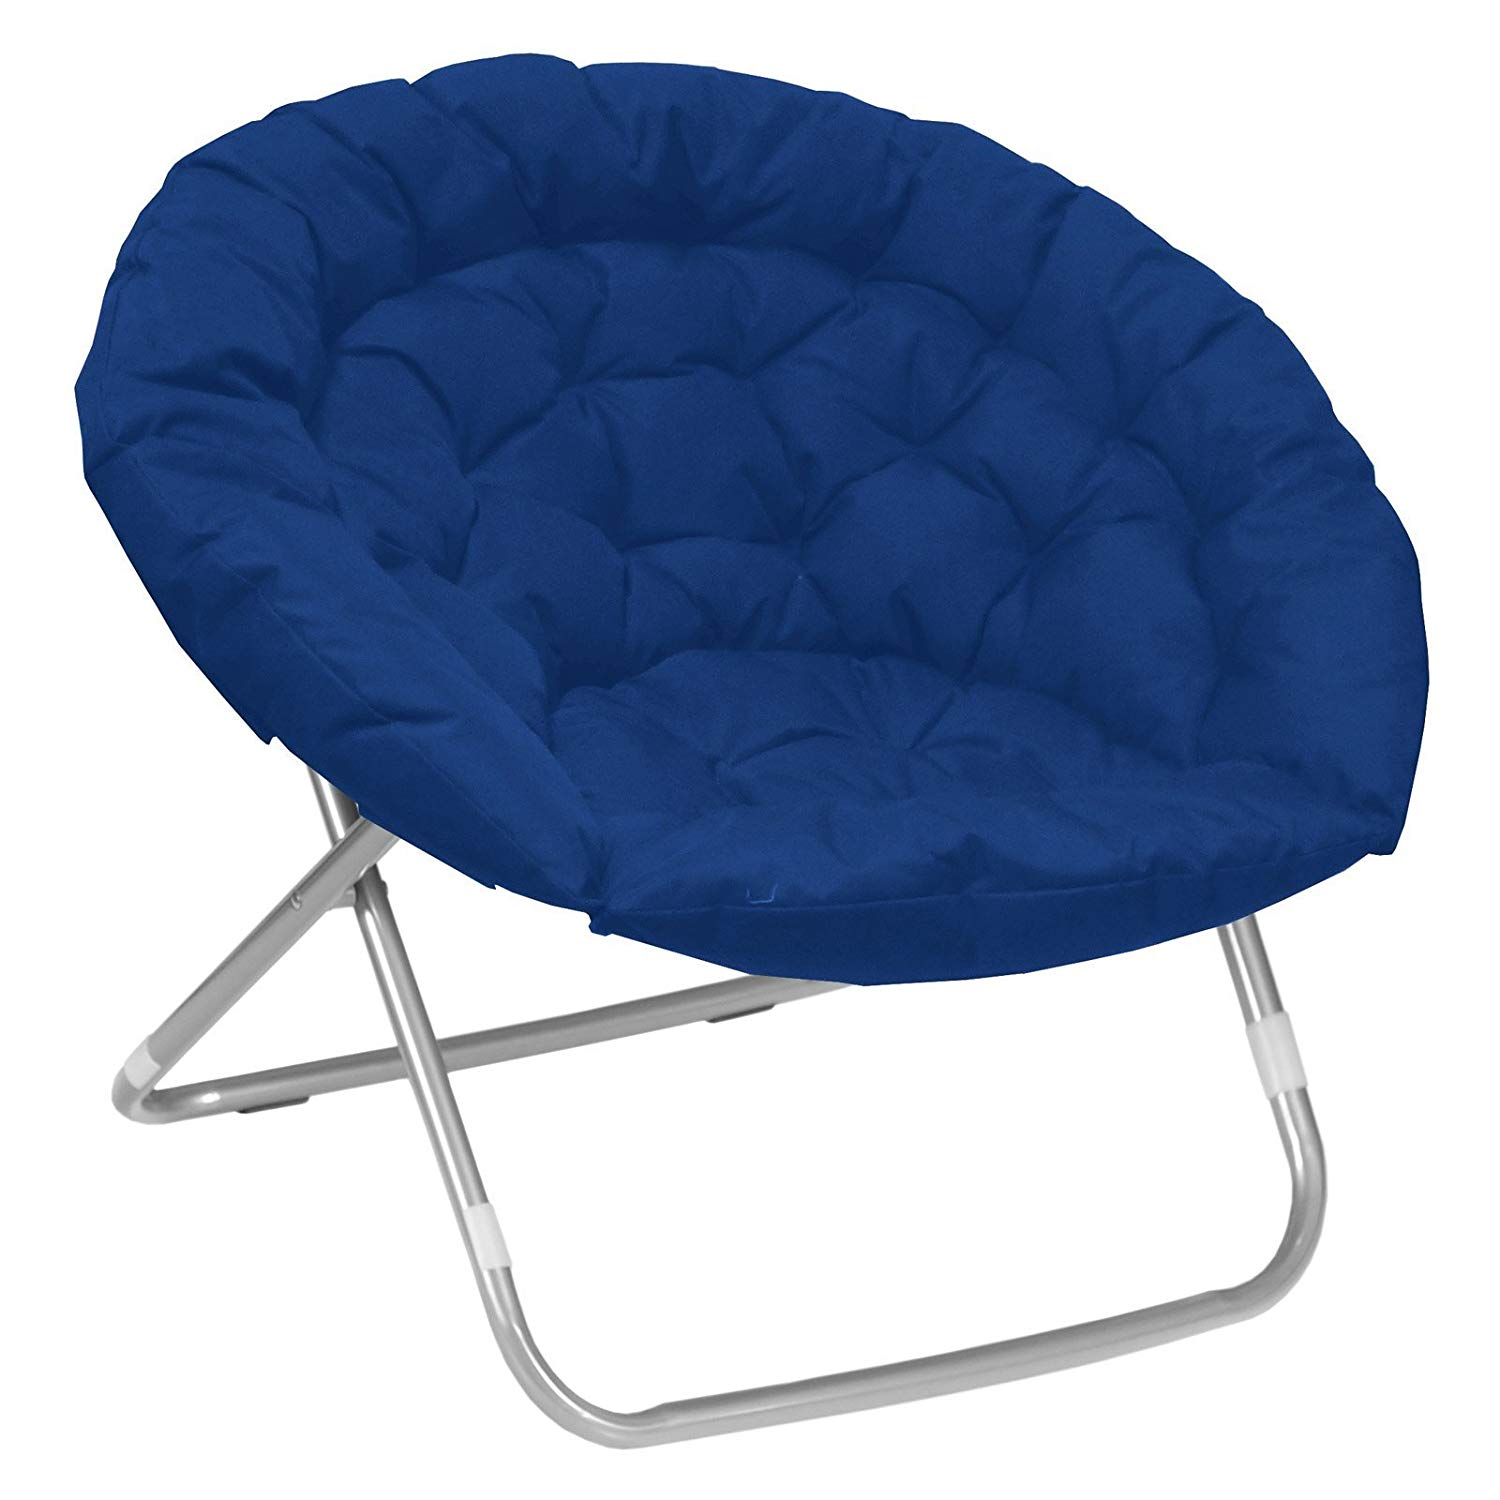 Oversized Moon Saucer Chairs For Kids Teens Adults Large Folding Padded  Portable Gaming Chair Bundle Includes